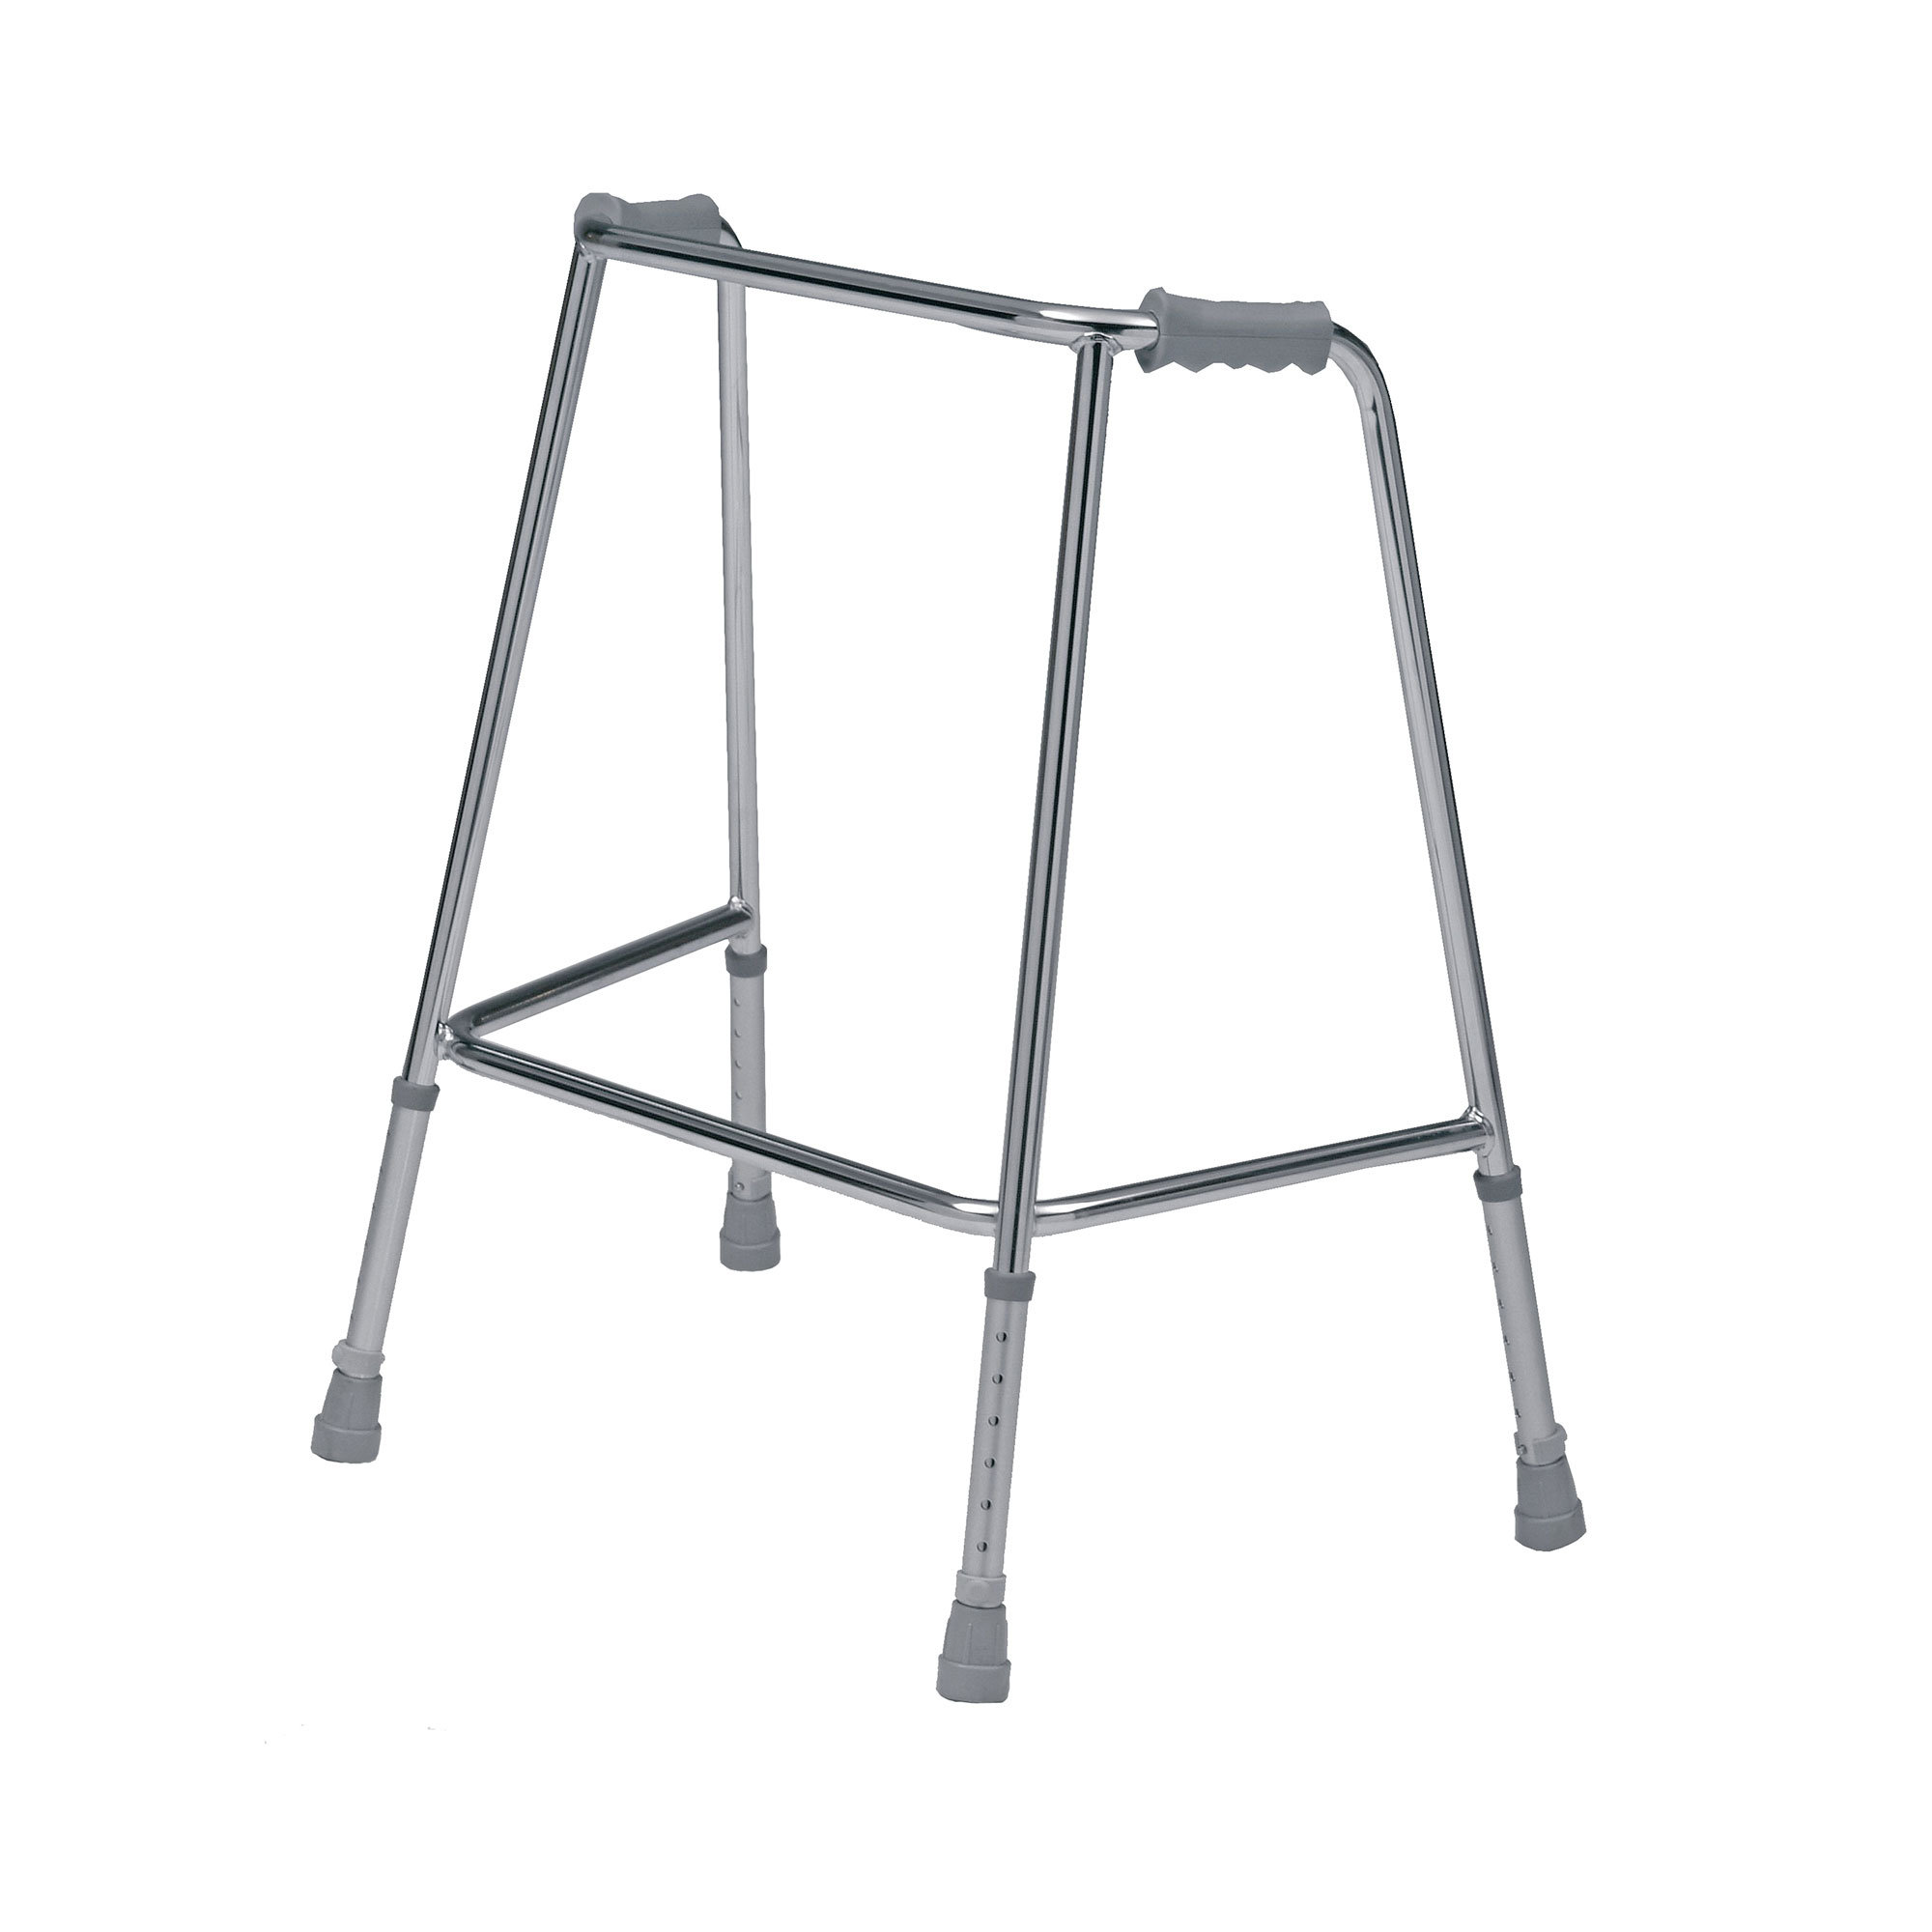 walking stick chair heavy duty first high invented 2511 frame roma medical